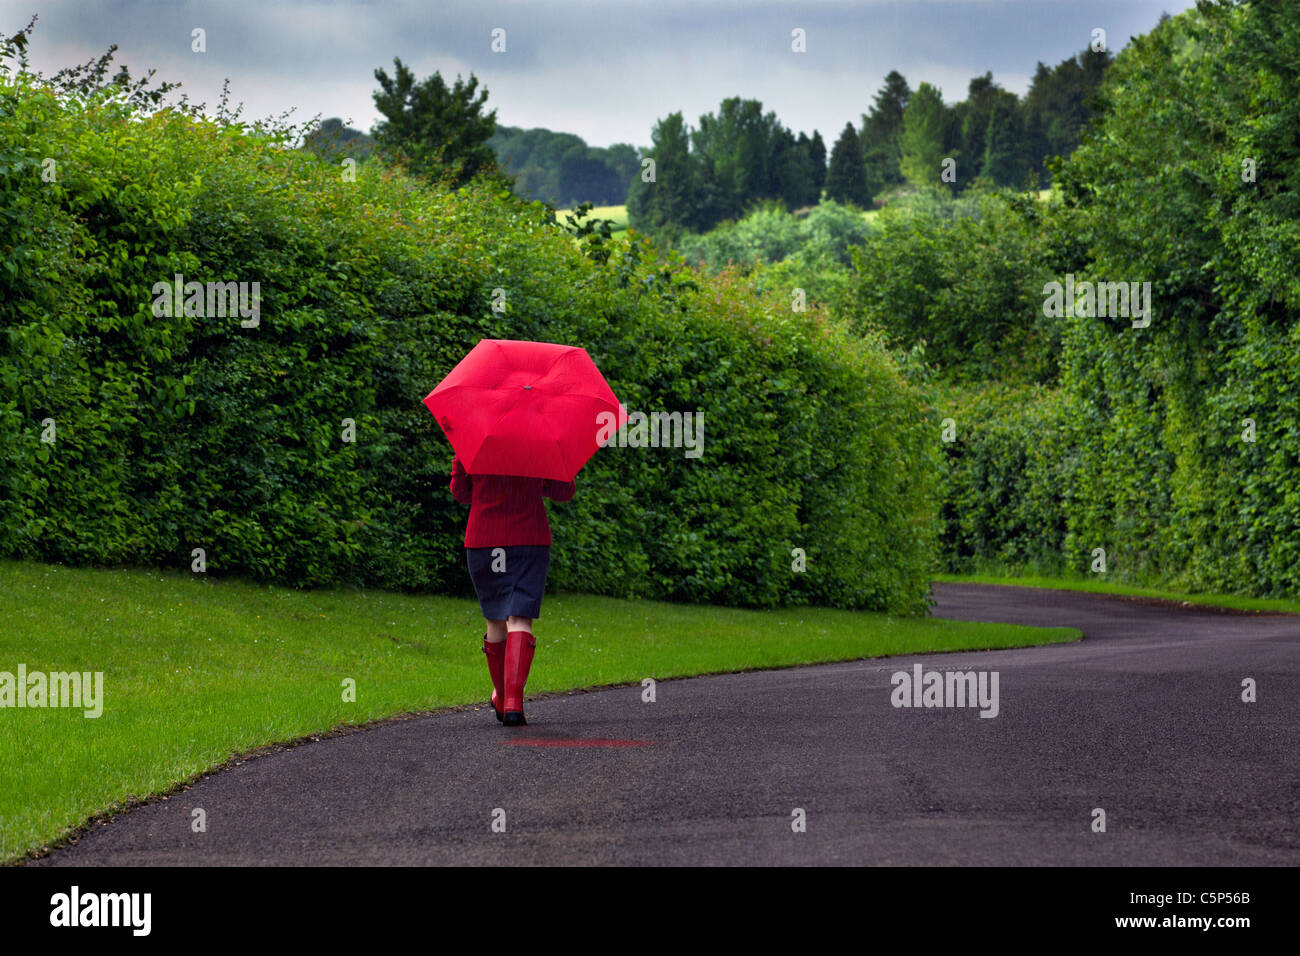 Photo of a woman walking down a road holding a red umbrella after a heavy downpour of rain on an overcast day. - Stock Image